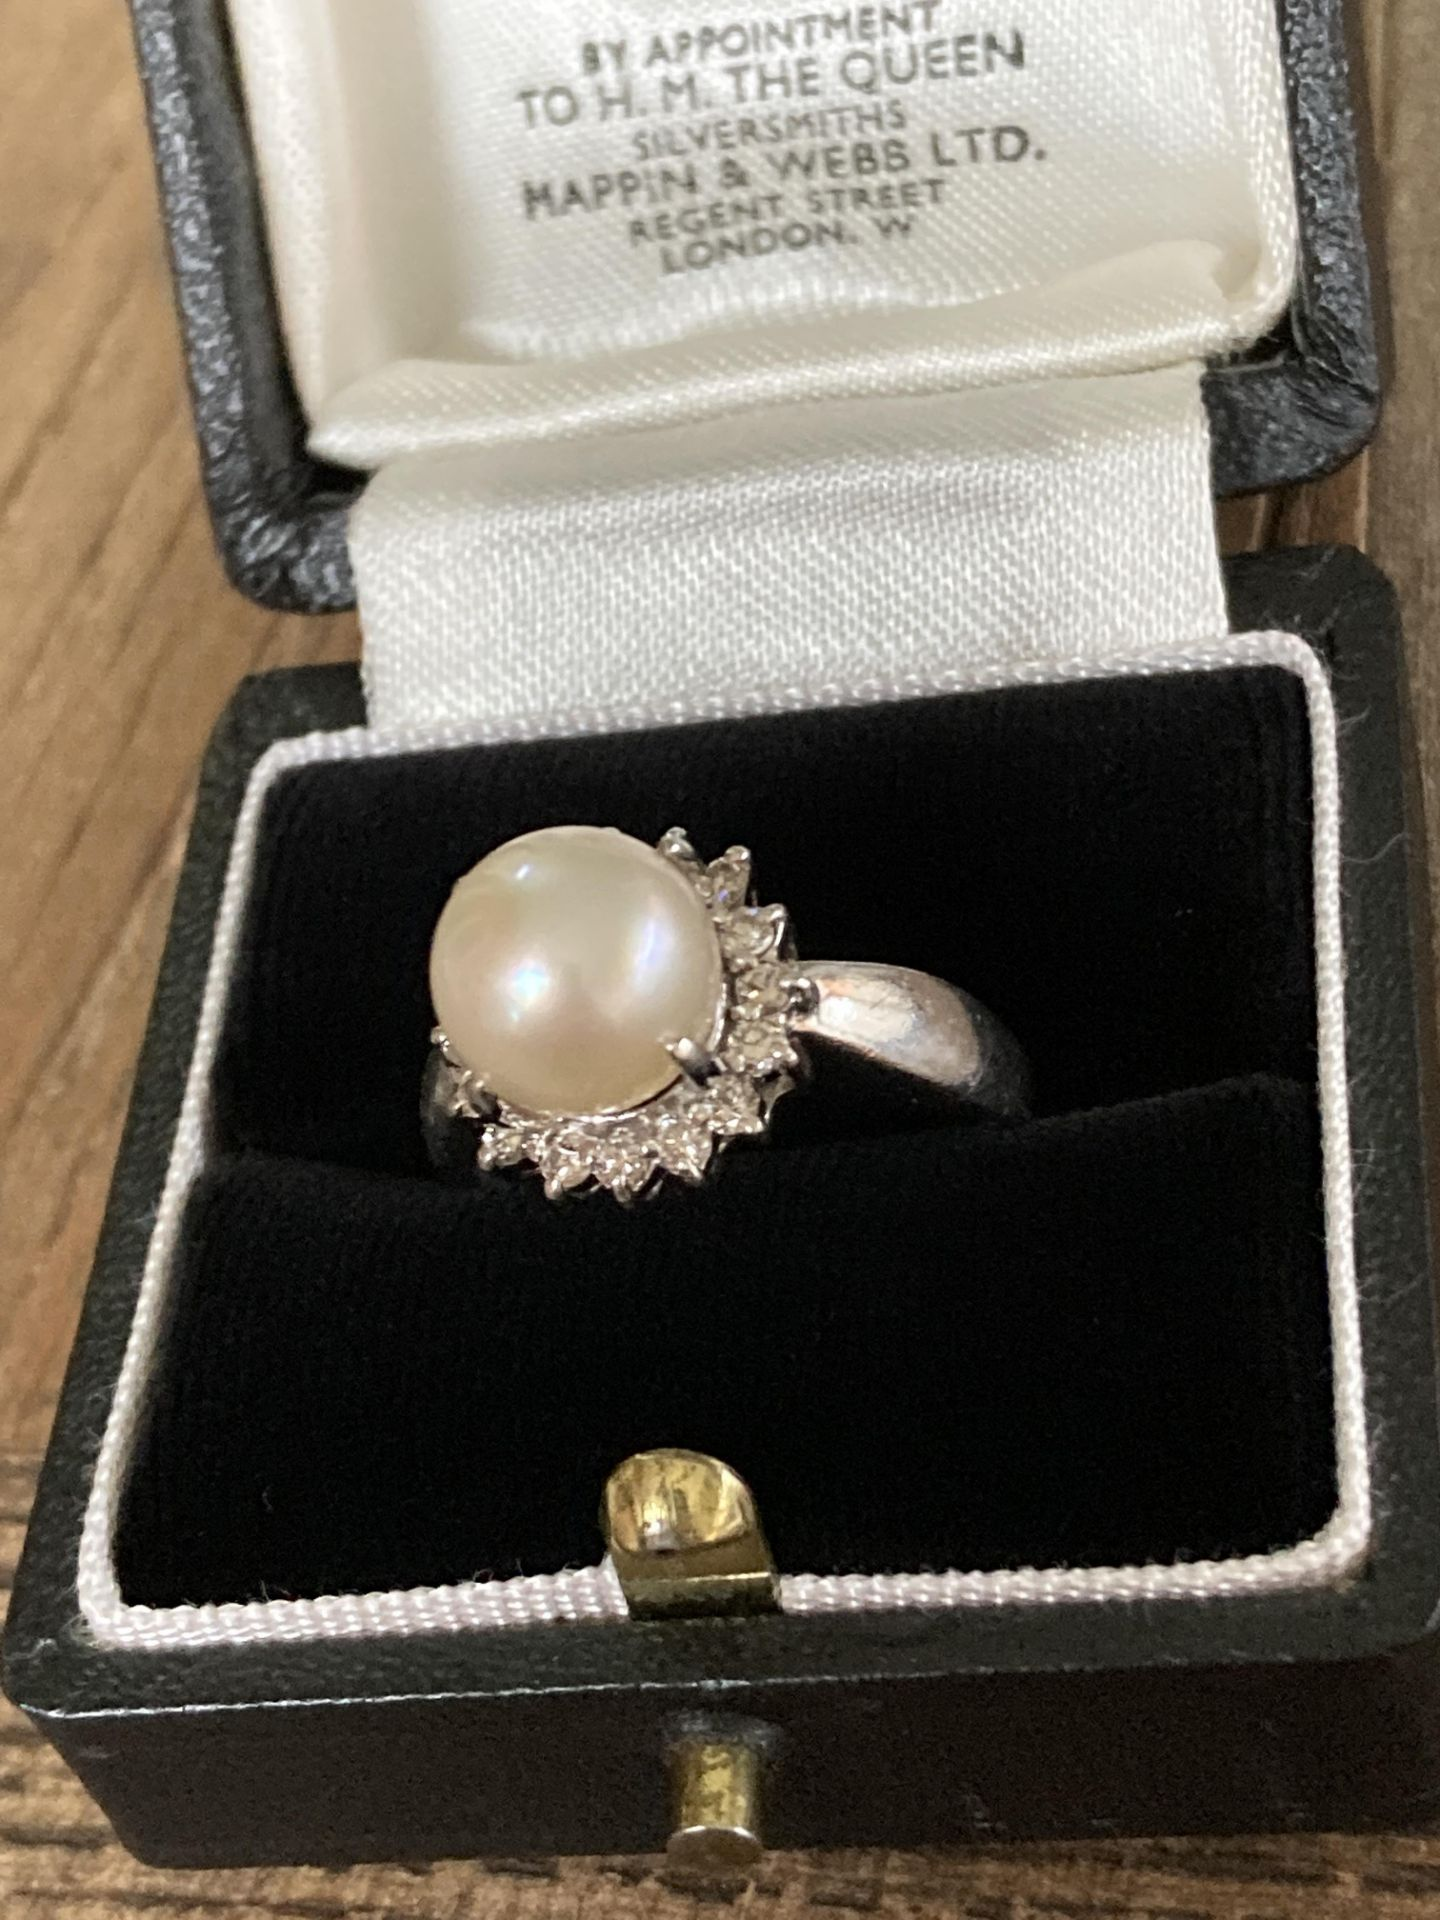 PLATINUM CULTURED PEARL & DIAMOND RING - SIZE: P, WEIGHT: 6.2G